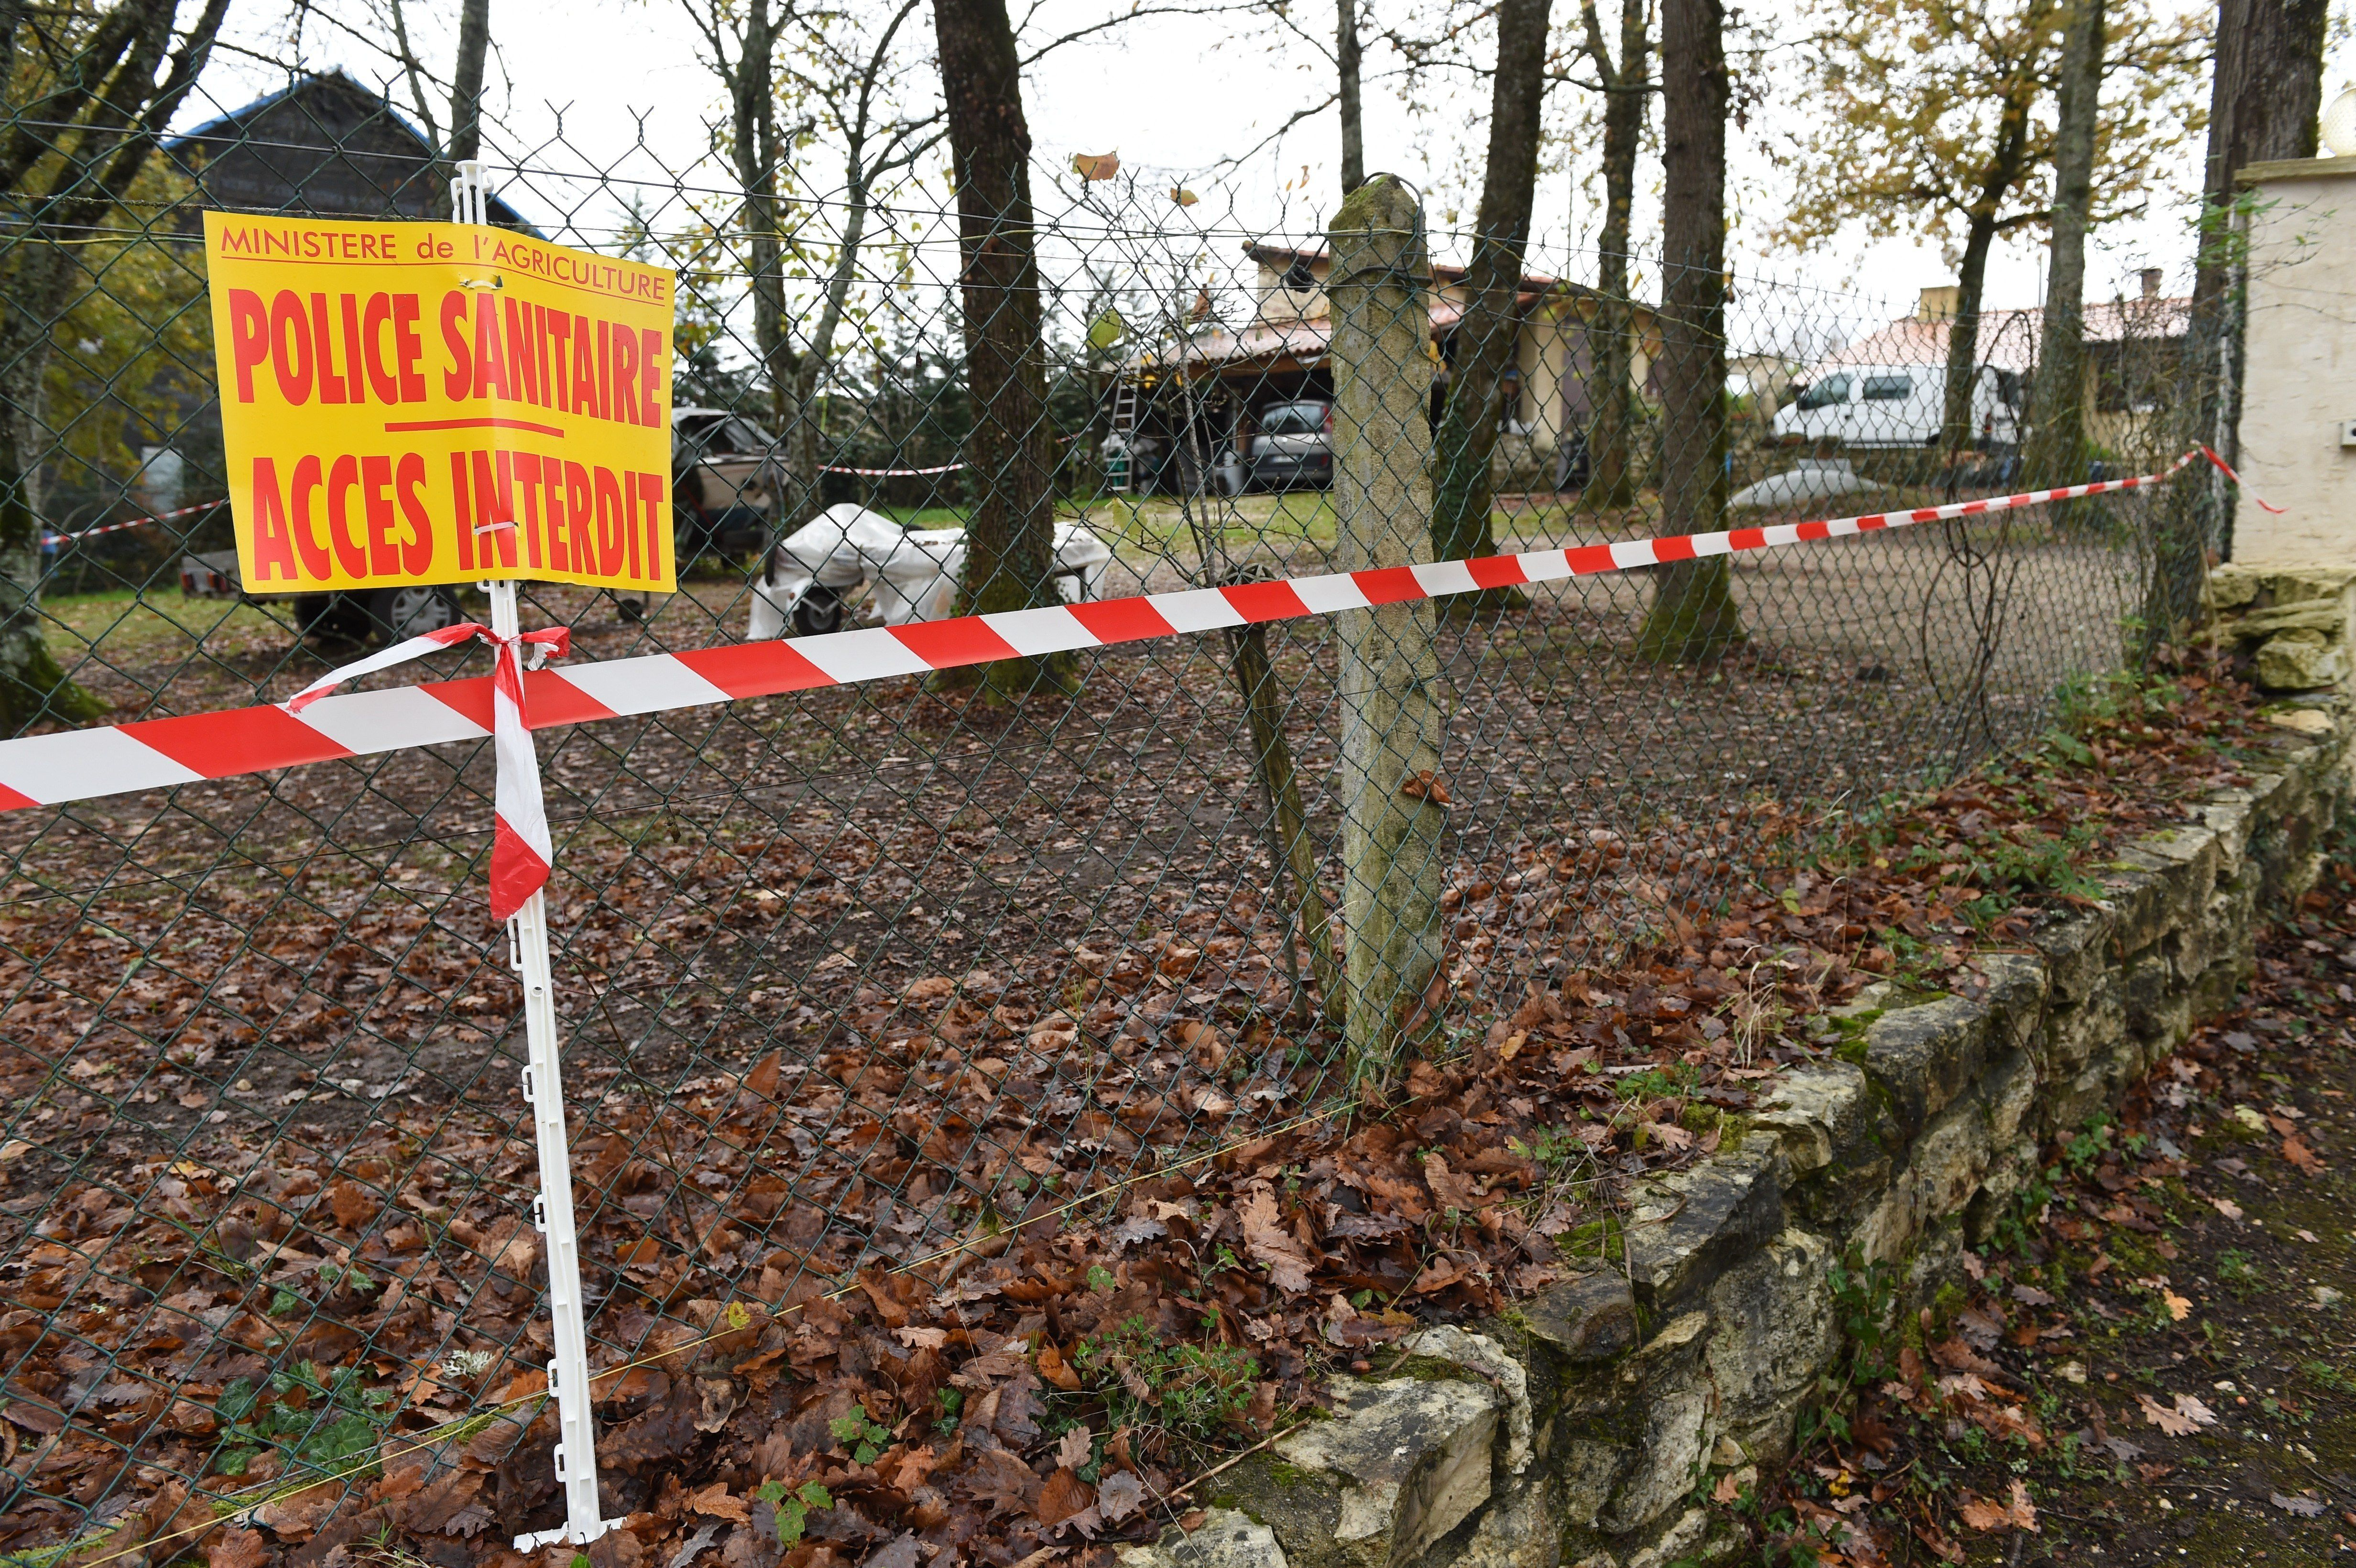 A placard reading 'Sanitary police. Access forbidden' has been set outside a house where an outbreak of the deadly H5N1 bird flu virus has been detected in chickens, on November 25, 2015 in Biras.  The bird flu outbreak, found among chickens, is the first to be reported in France since 2007 when it had been detected in wild swans, data from the World Organisation for Animal Health (OIE) showed. AFP PHOTO / MEHDI FEDOUACH / AFP / MEHDI FEDOUACH        (Photo credit should read MEHDI FEDOUACH/AFP/Getty Images)